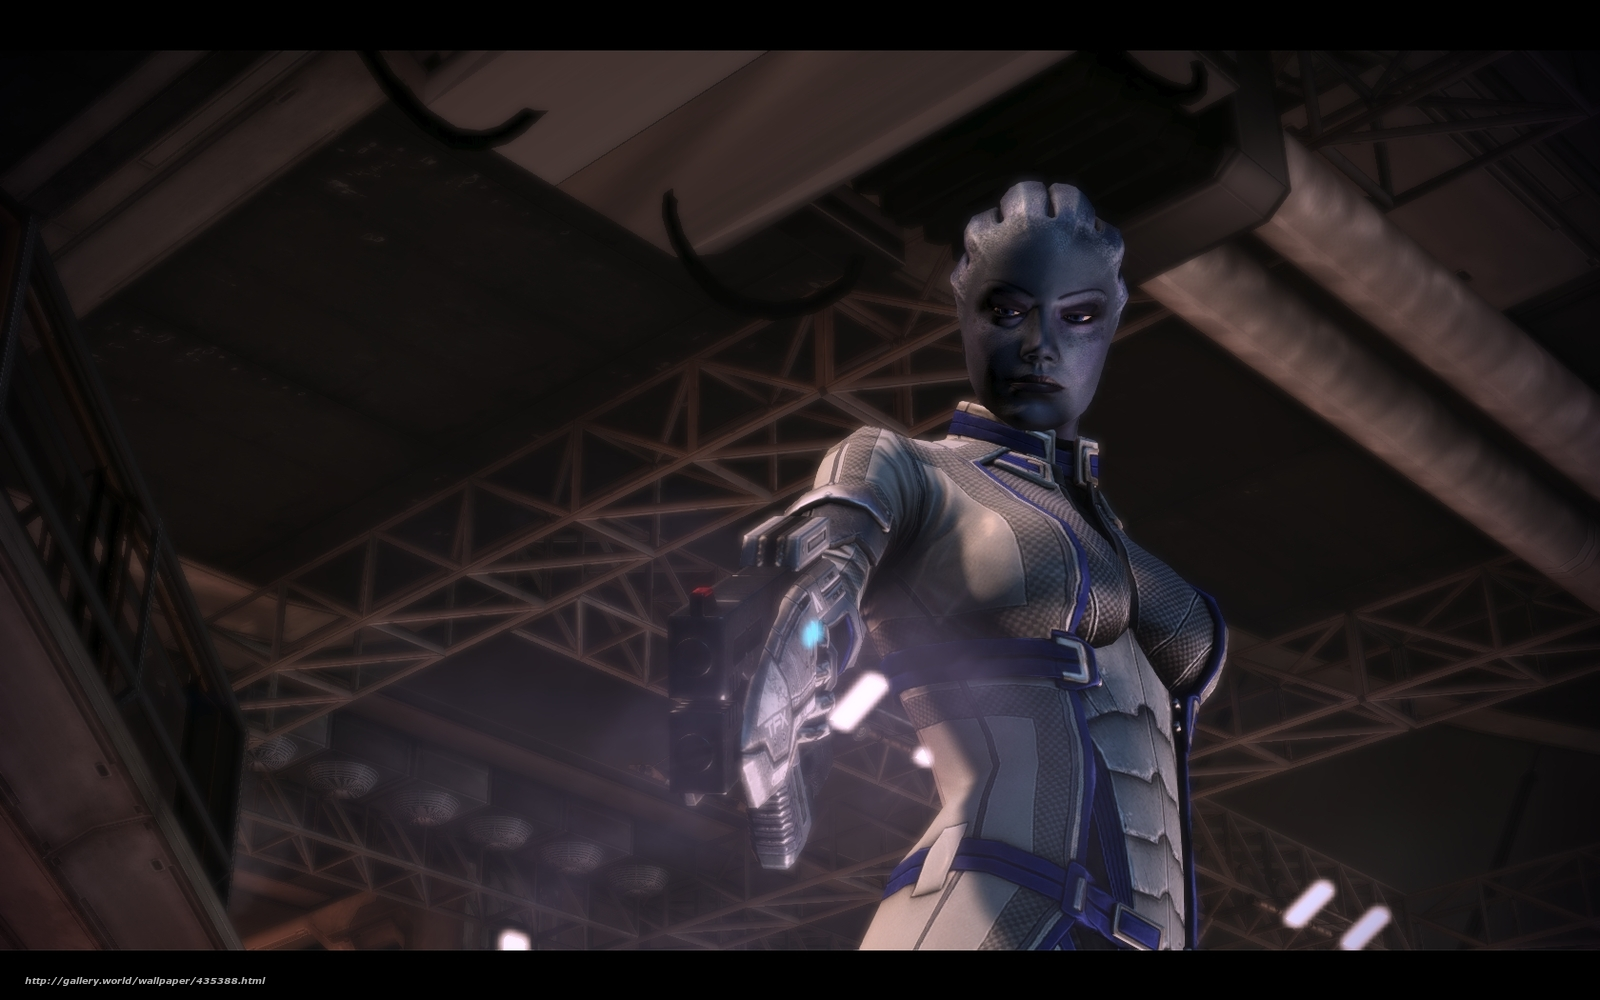 Mass effect liara nackt hentai pictures